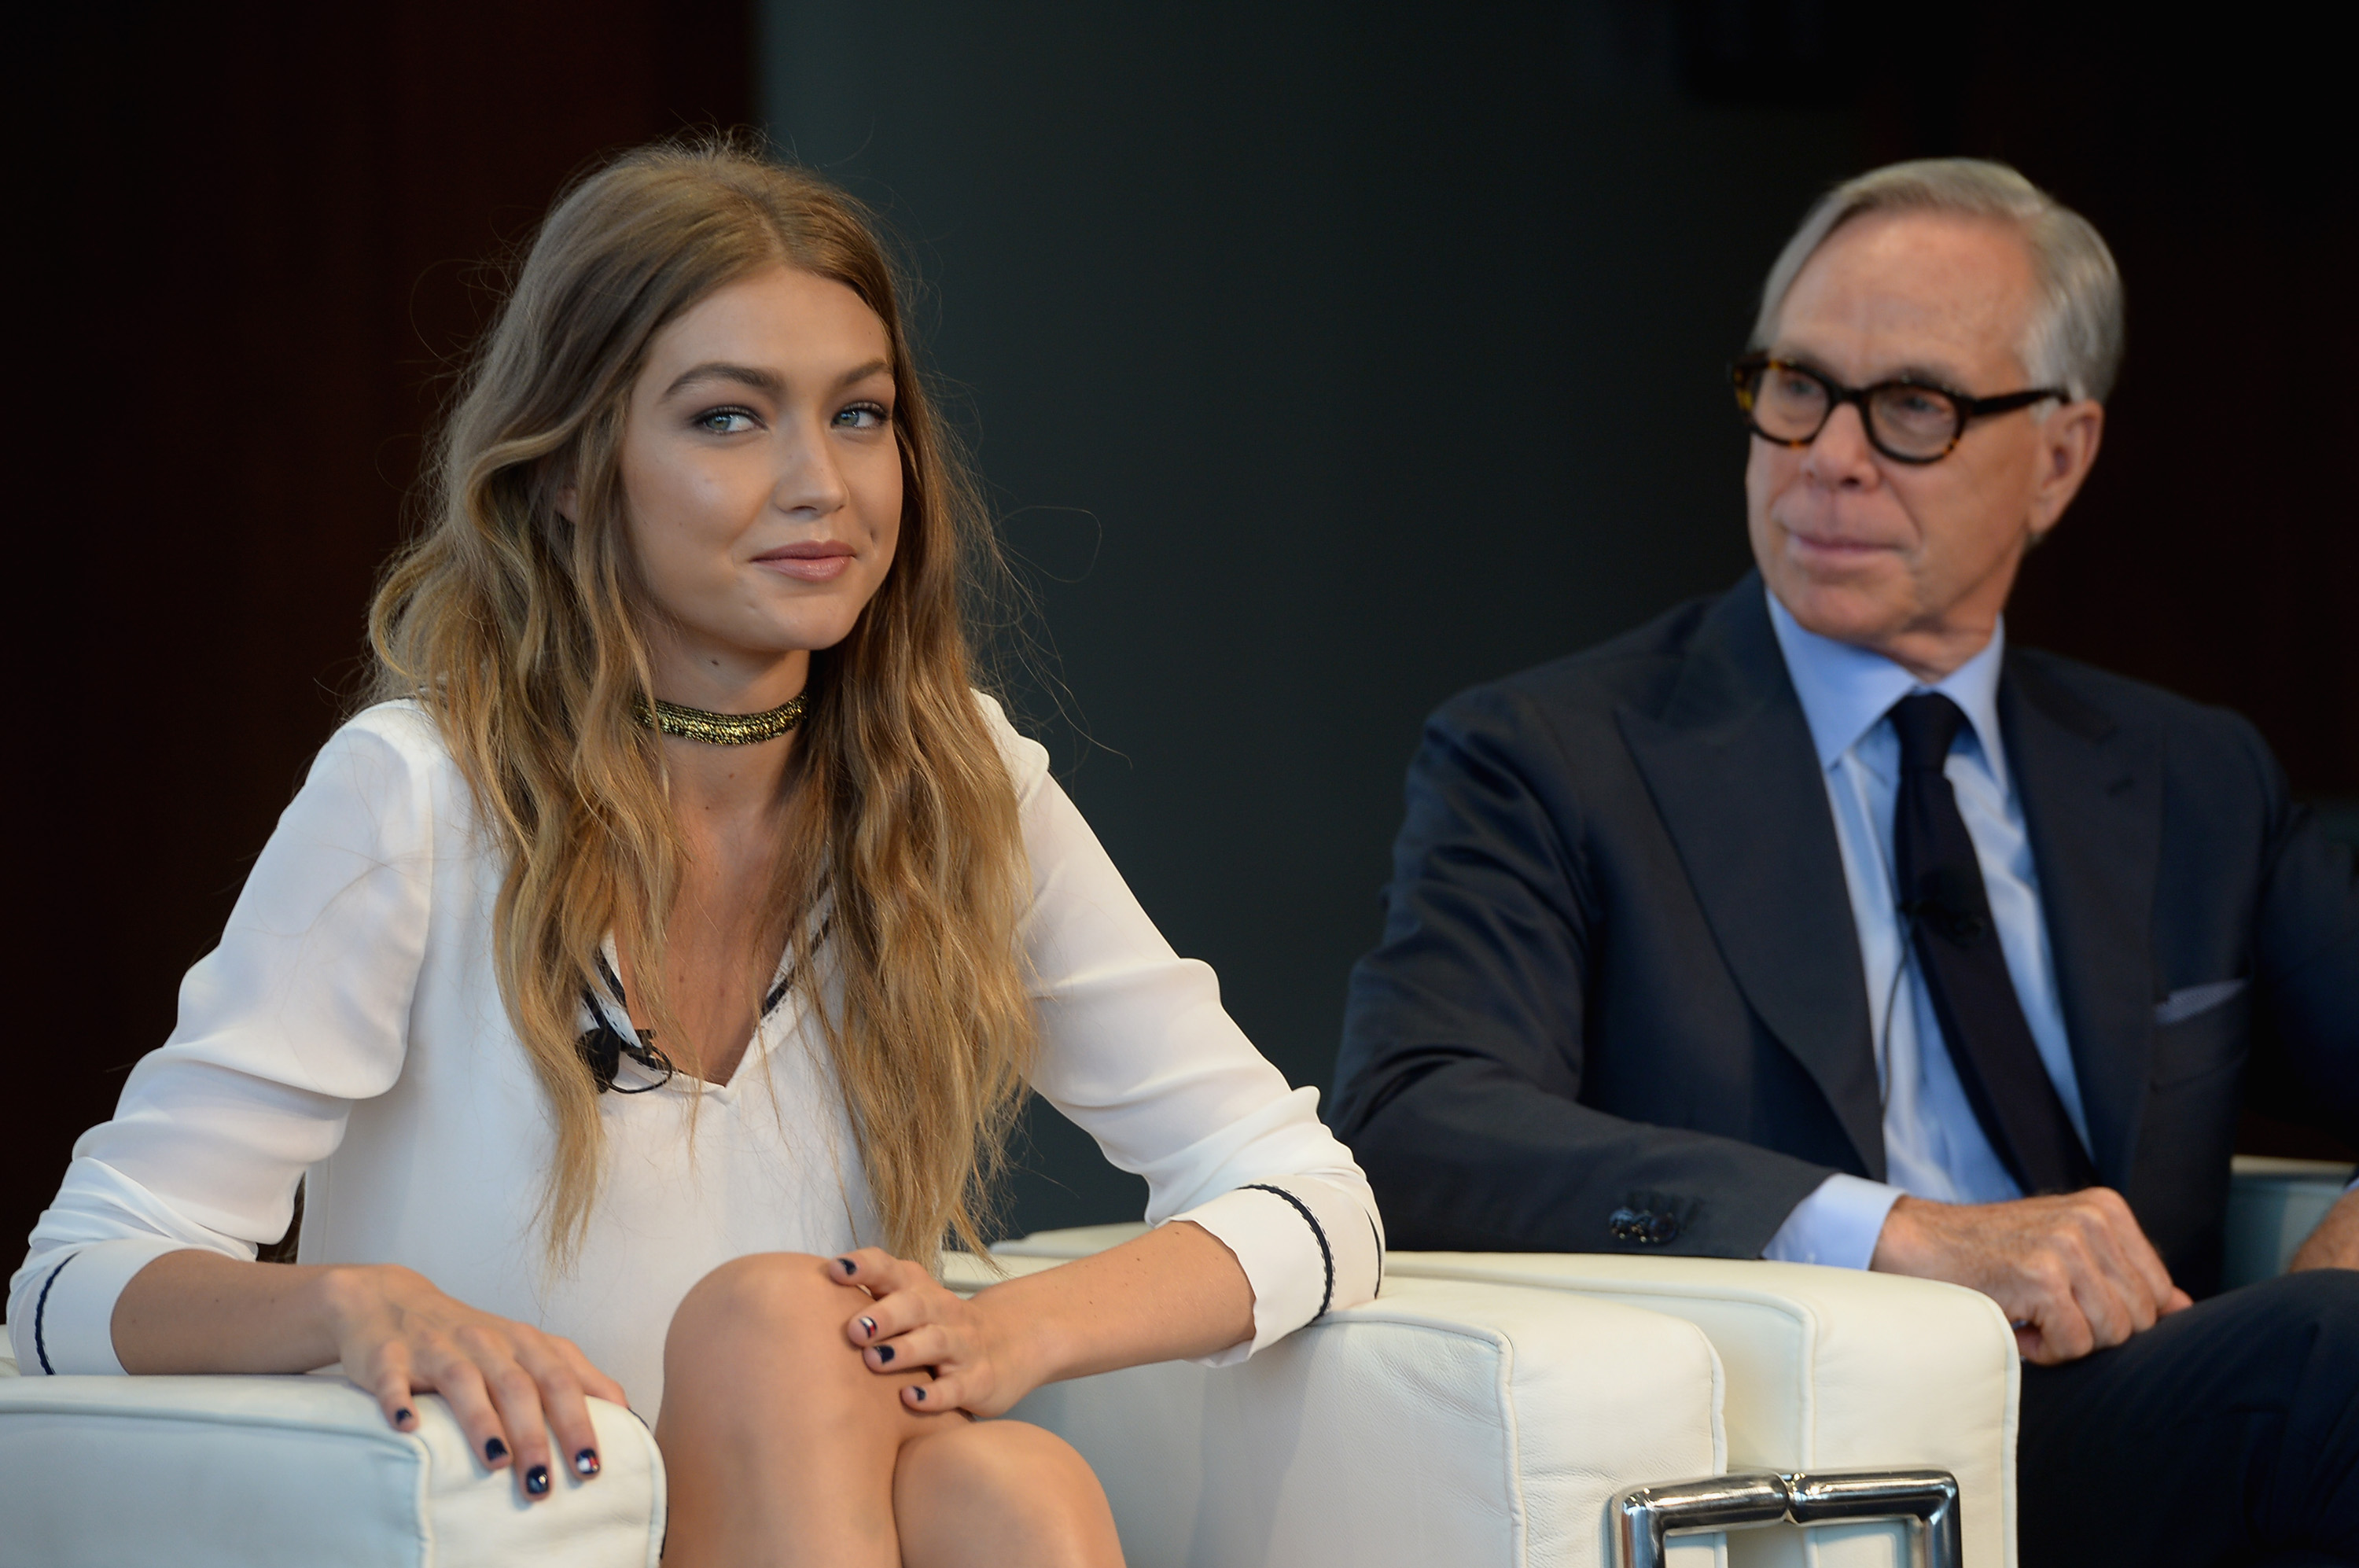 Gigi Hadid's Tommy Hilfiger-inspired nail art is cute and easy to do